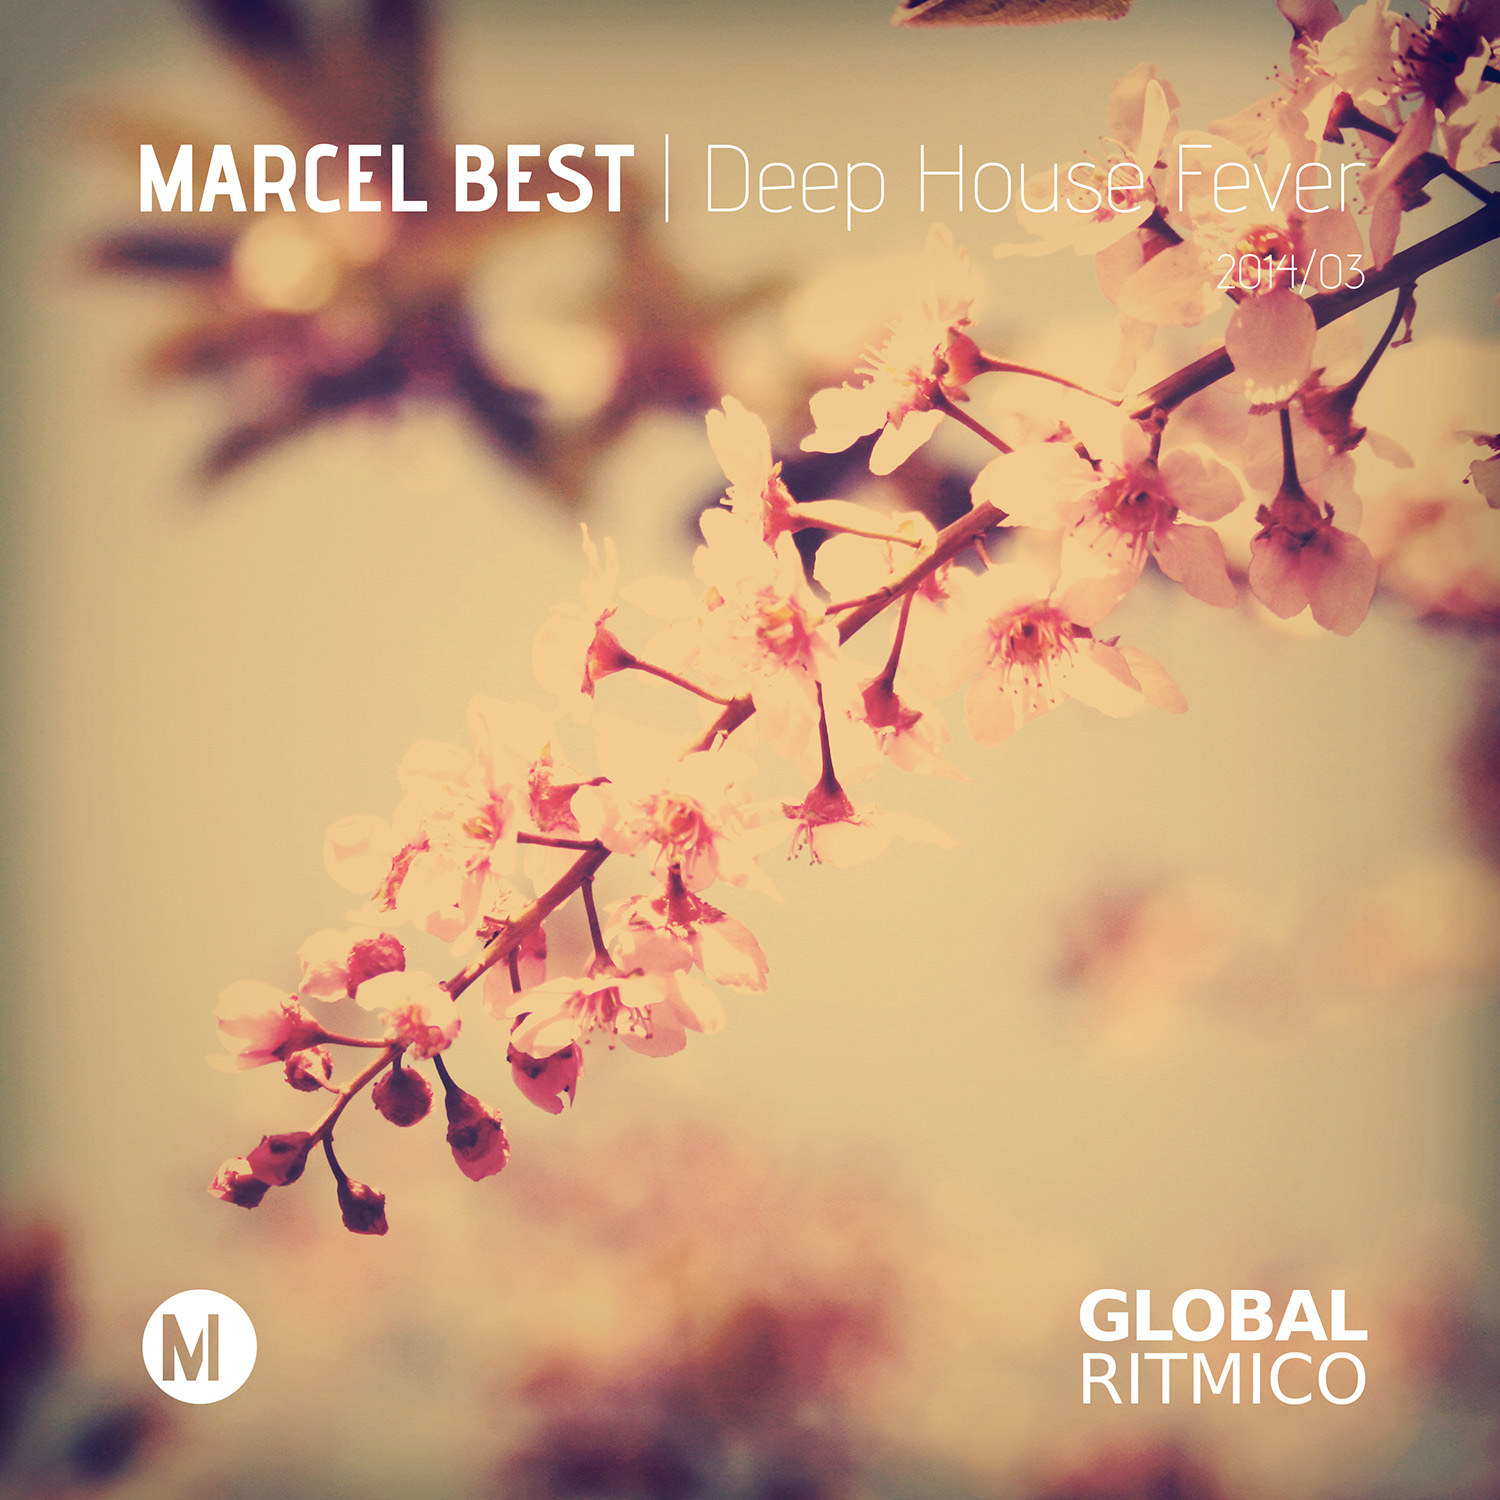 Marcel Best - Deep House Fever 2014 03